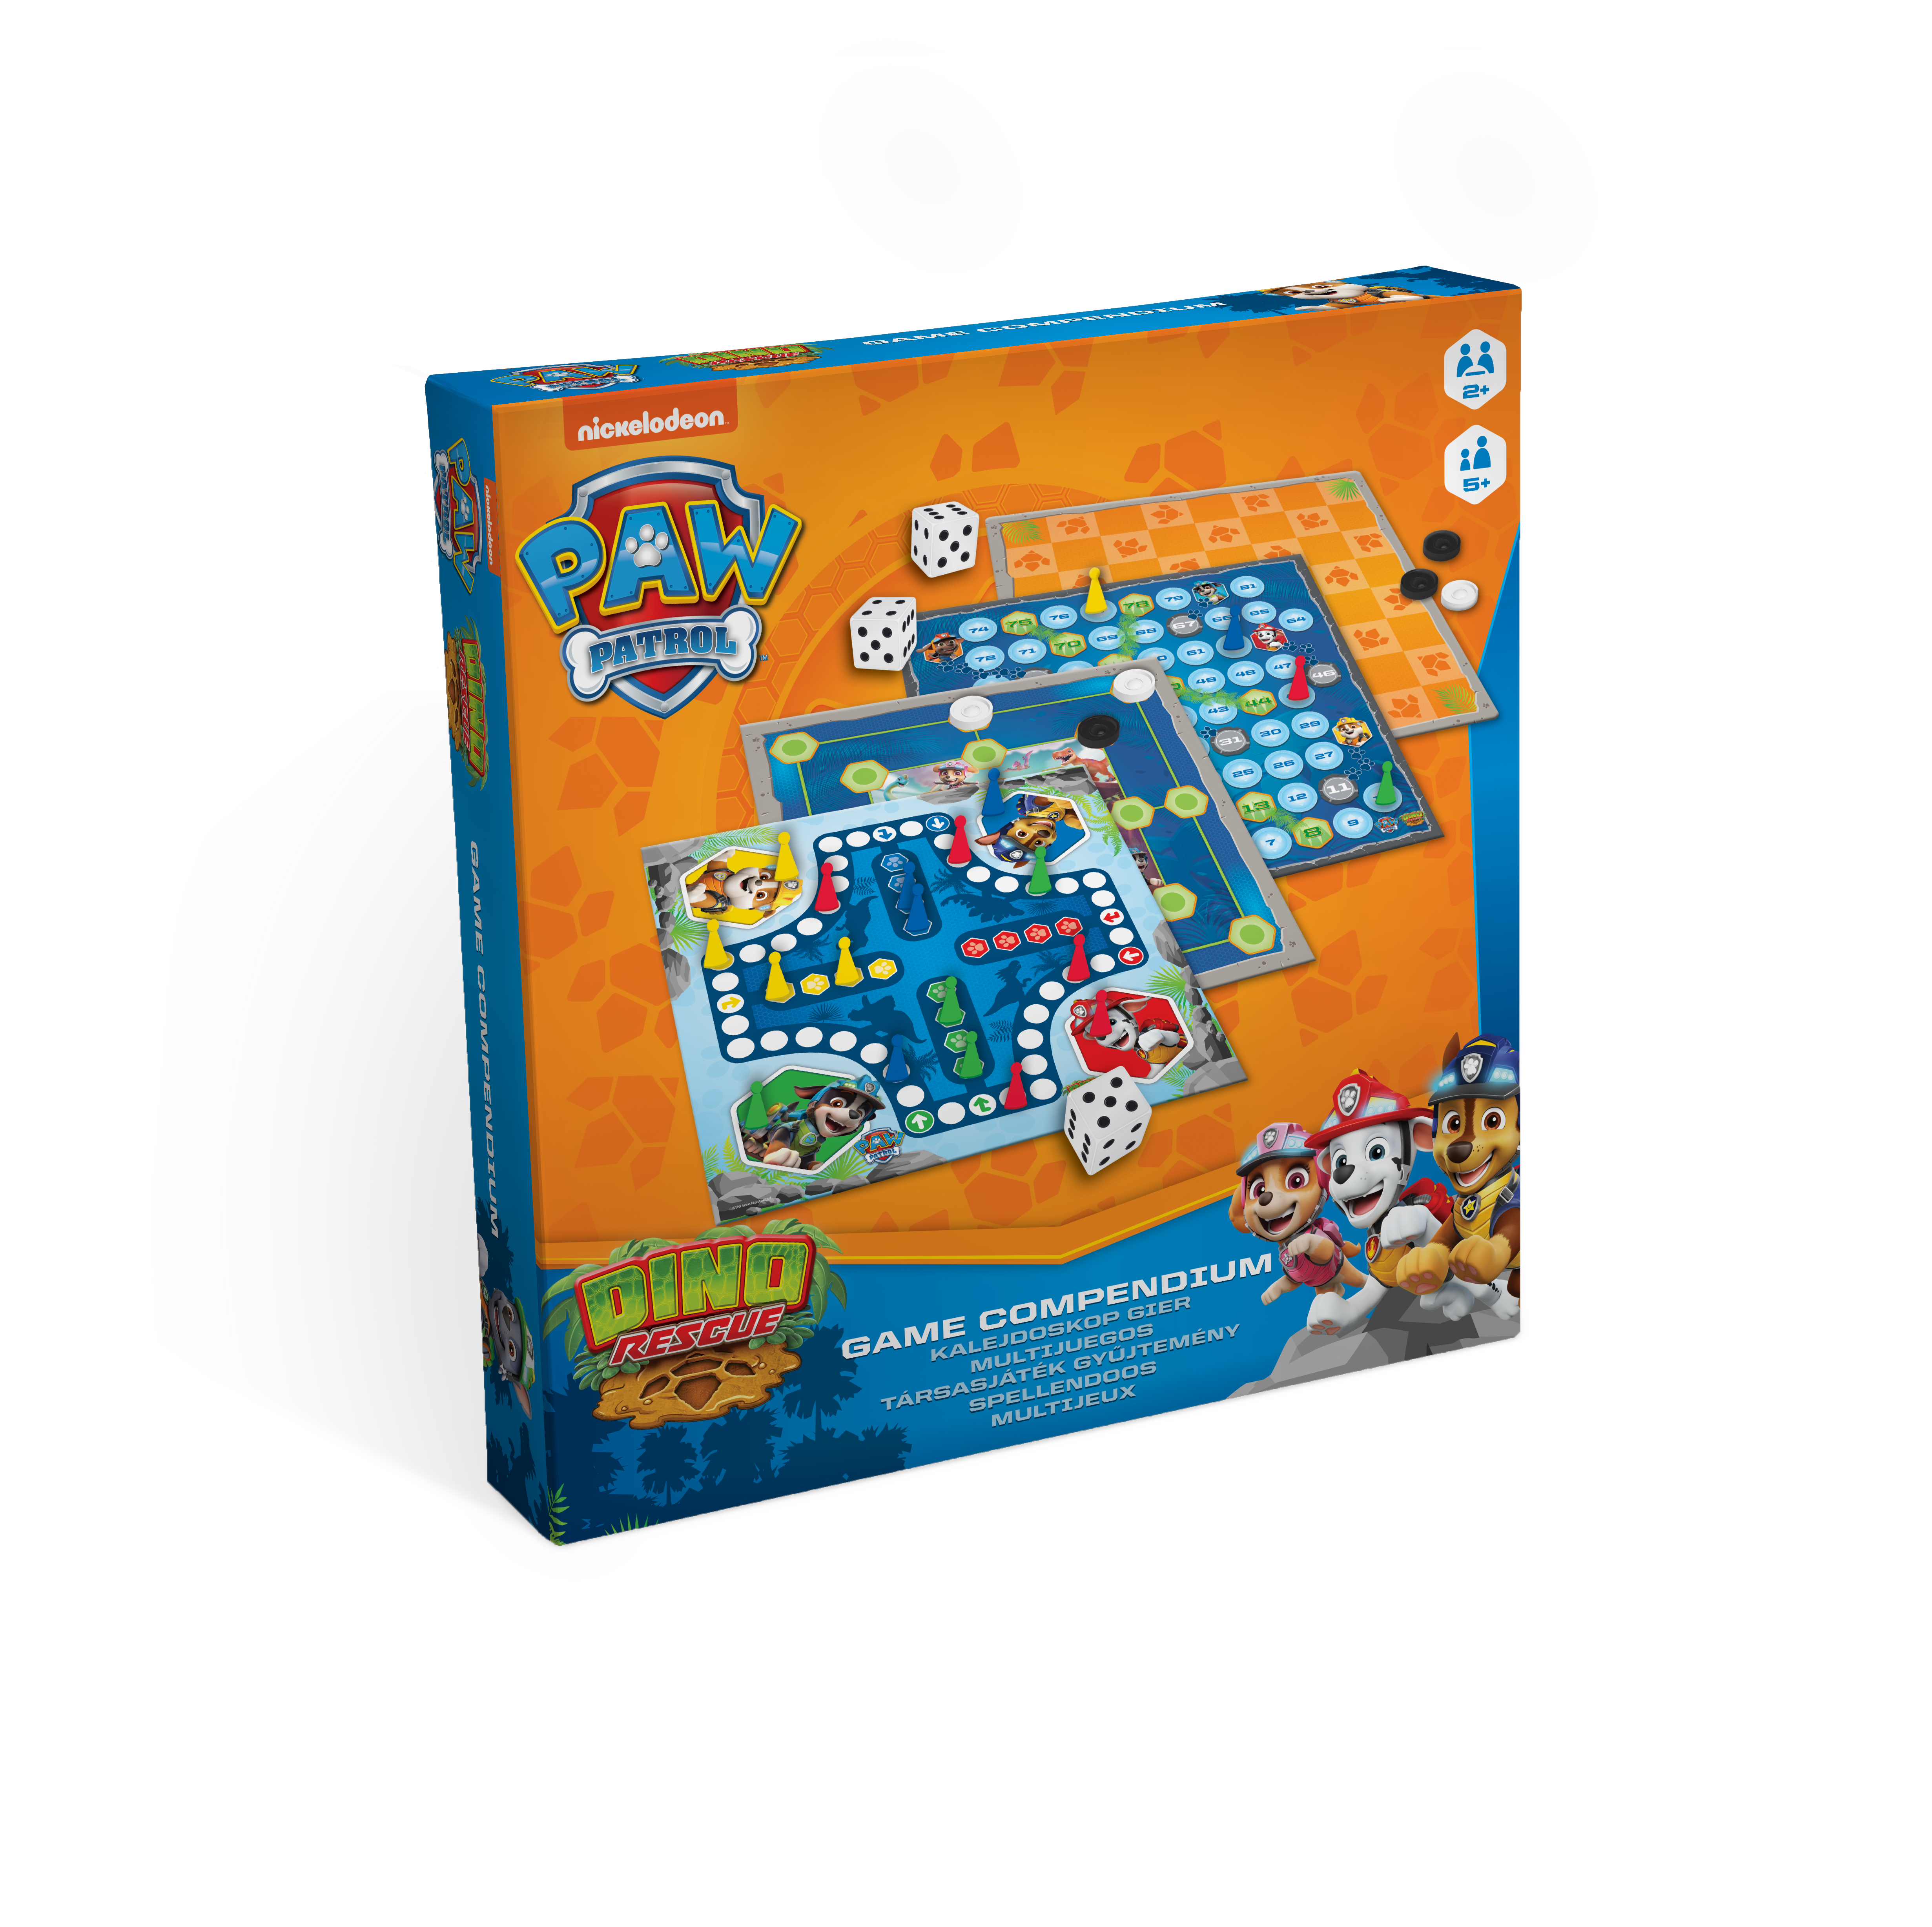 PAW PATROL CARD GAMES 3 IN 1 HAPPY FAMILIES CRAZY EIGHTS PAIRS SHUFFLE FUN PLAY